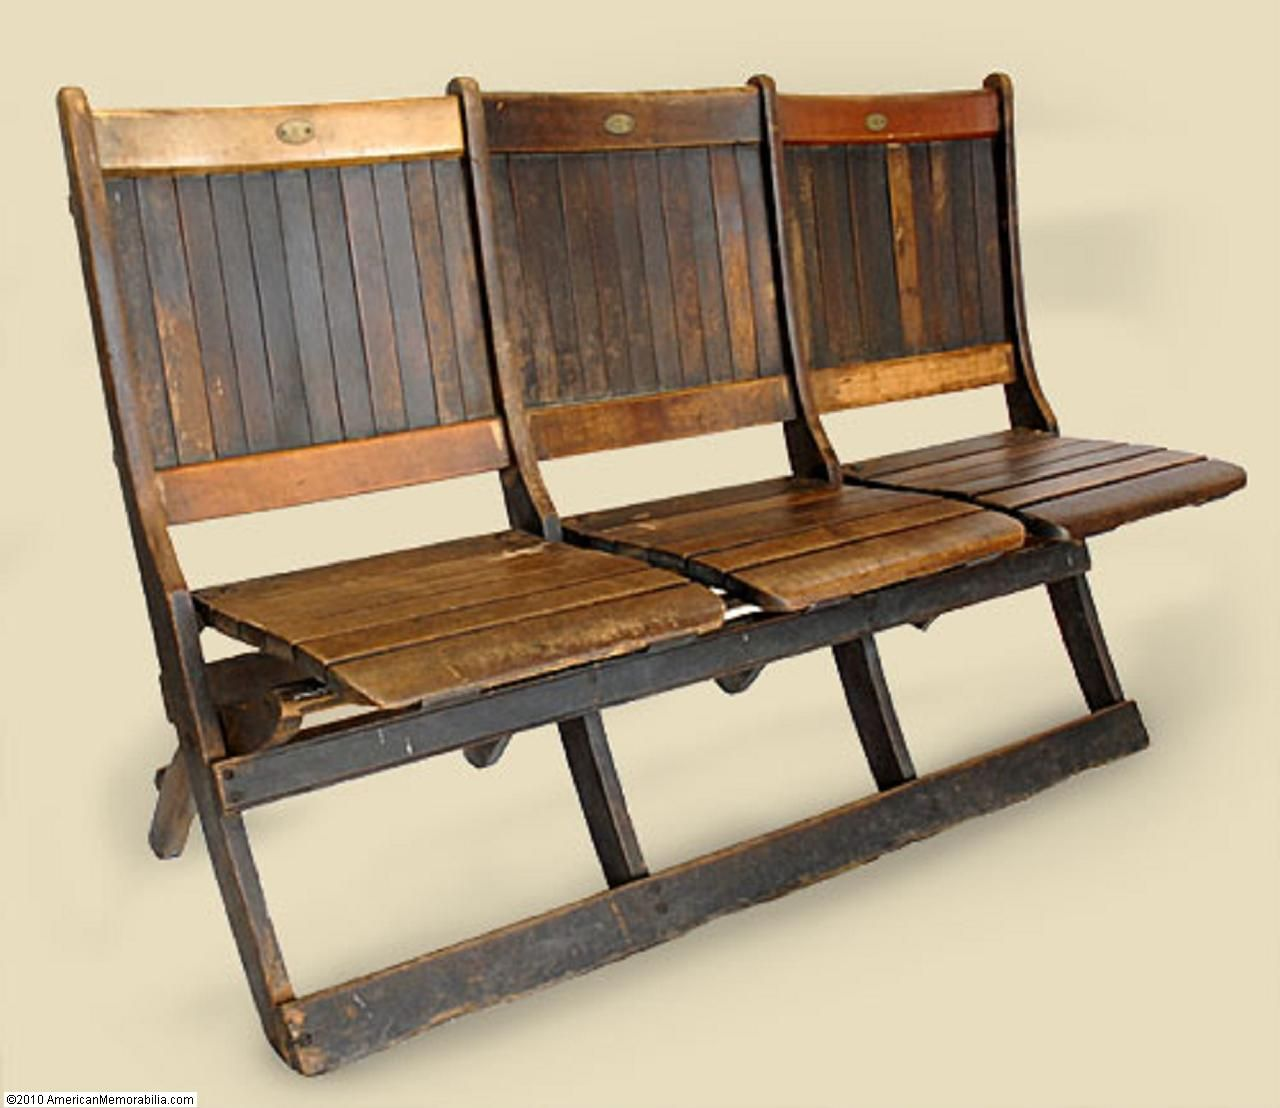 19251967 Madison Square Garden Authentic Seats. Outdoor